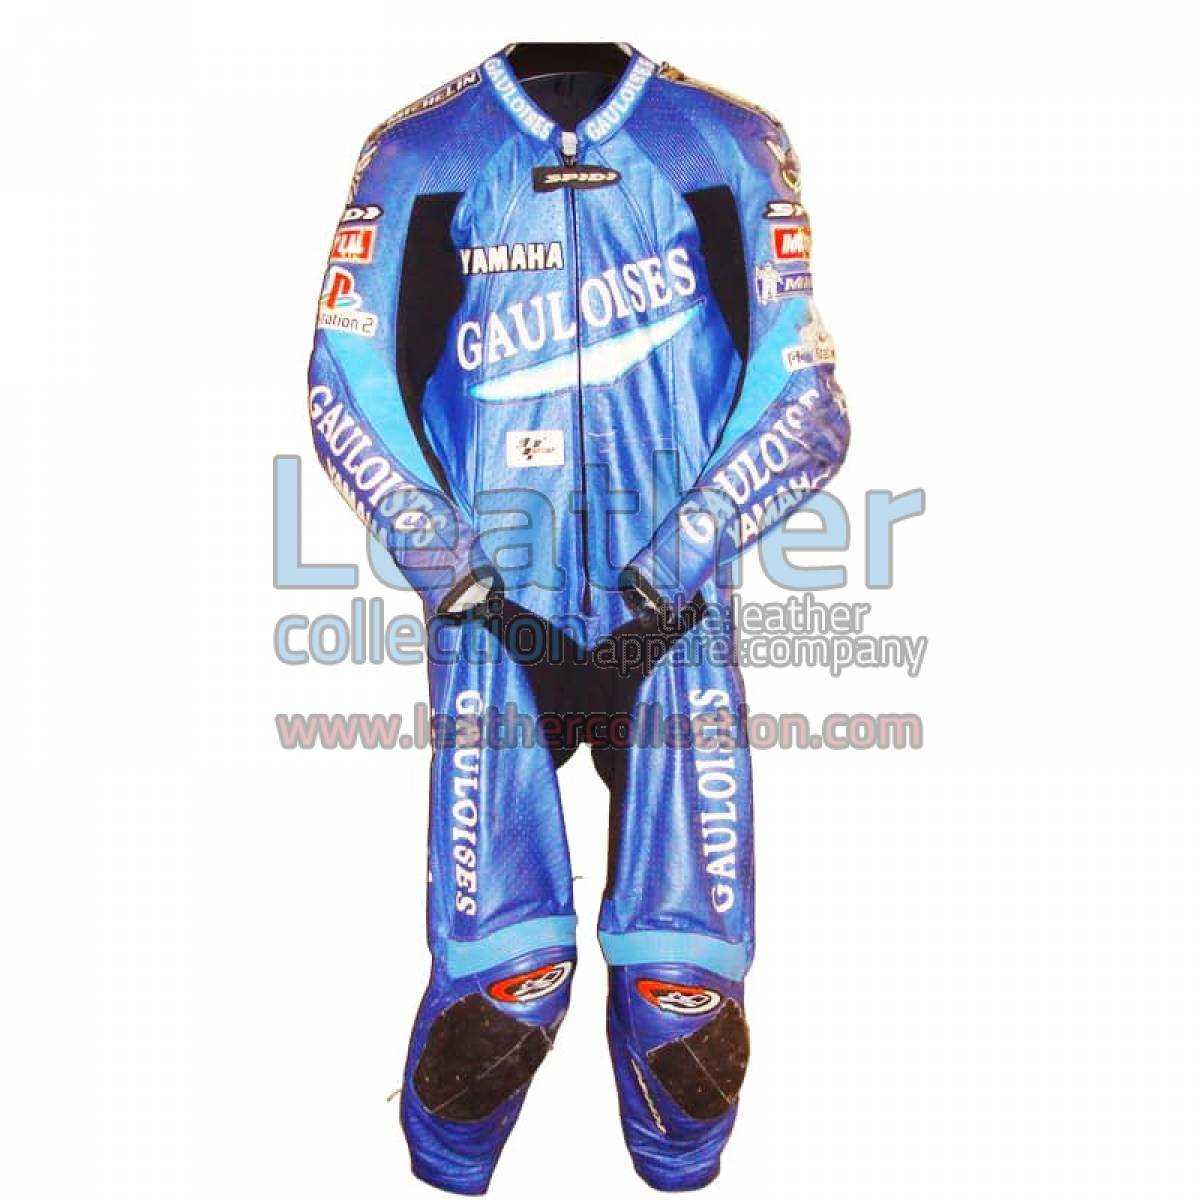 Olivier Jacque Yamaha GP 2003 Racing Suit